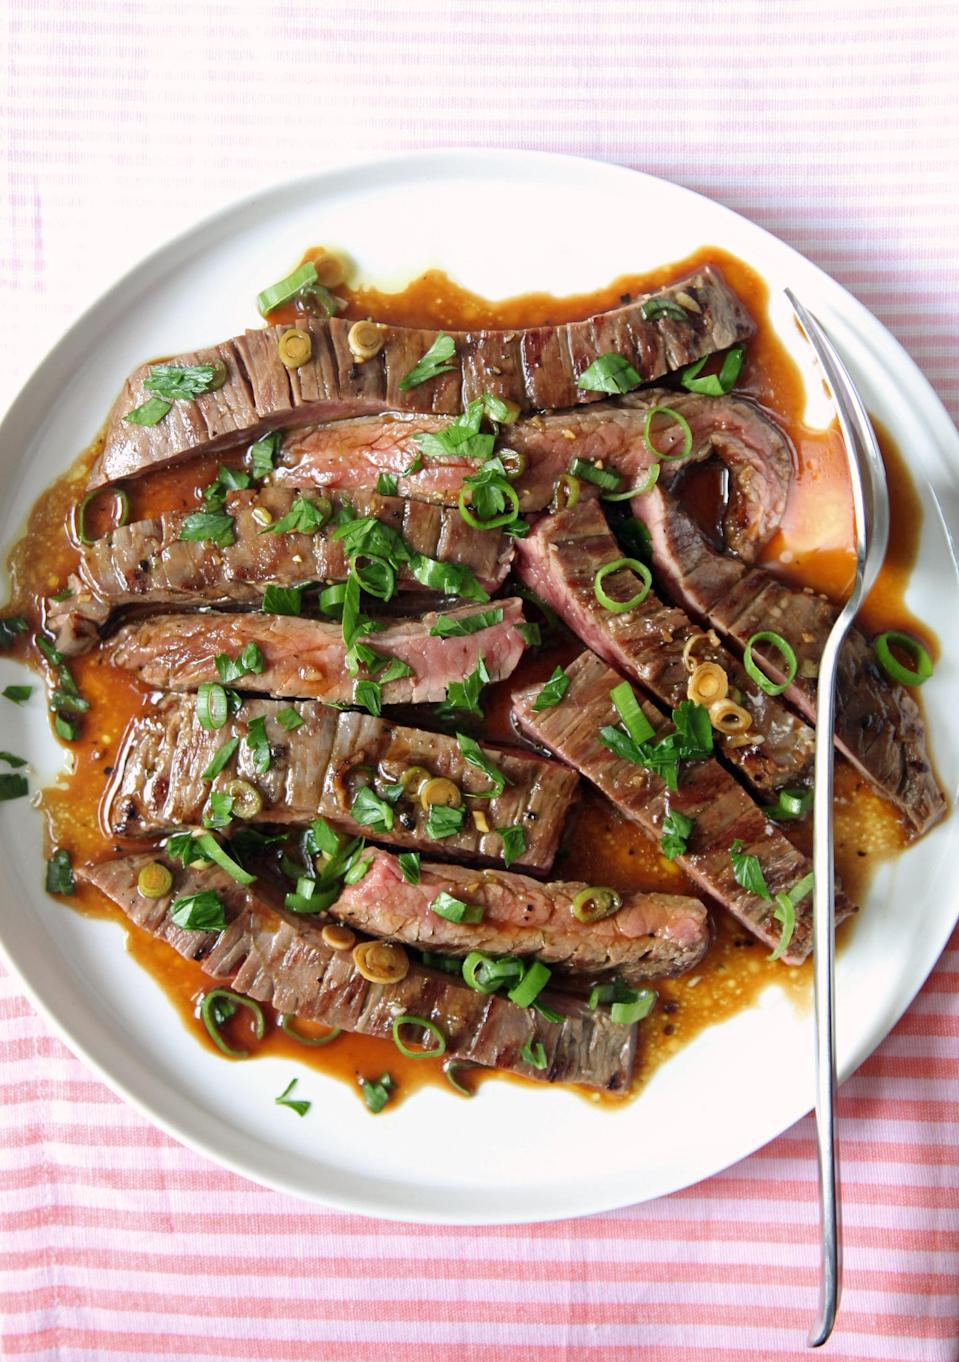 "<p>Hate when the herbs and seasoning get burnt onto your steak? Try this genius trick, marinating the beef after grilling to add bright and bold flavor.</p> <p><strong>Get the recipe:</strong> <a href=""https://www.popsugar.com/food/Easy-Grilled-Marinated-Skirt-Steak-Recipe-35539837"" class=""link rapid-noclick-resp"" rel=""nofollow noopener"" target=""_blank"" data-ylk=""slk:postgrill marinated skirt steak"">postgrill marinated skirt steak</a></p>"